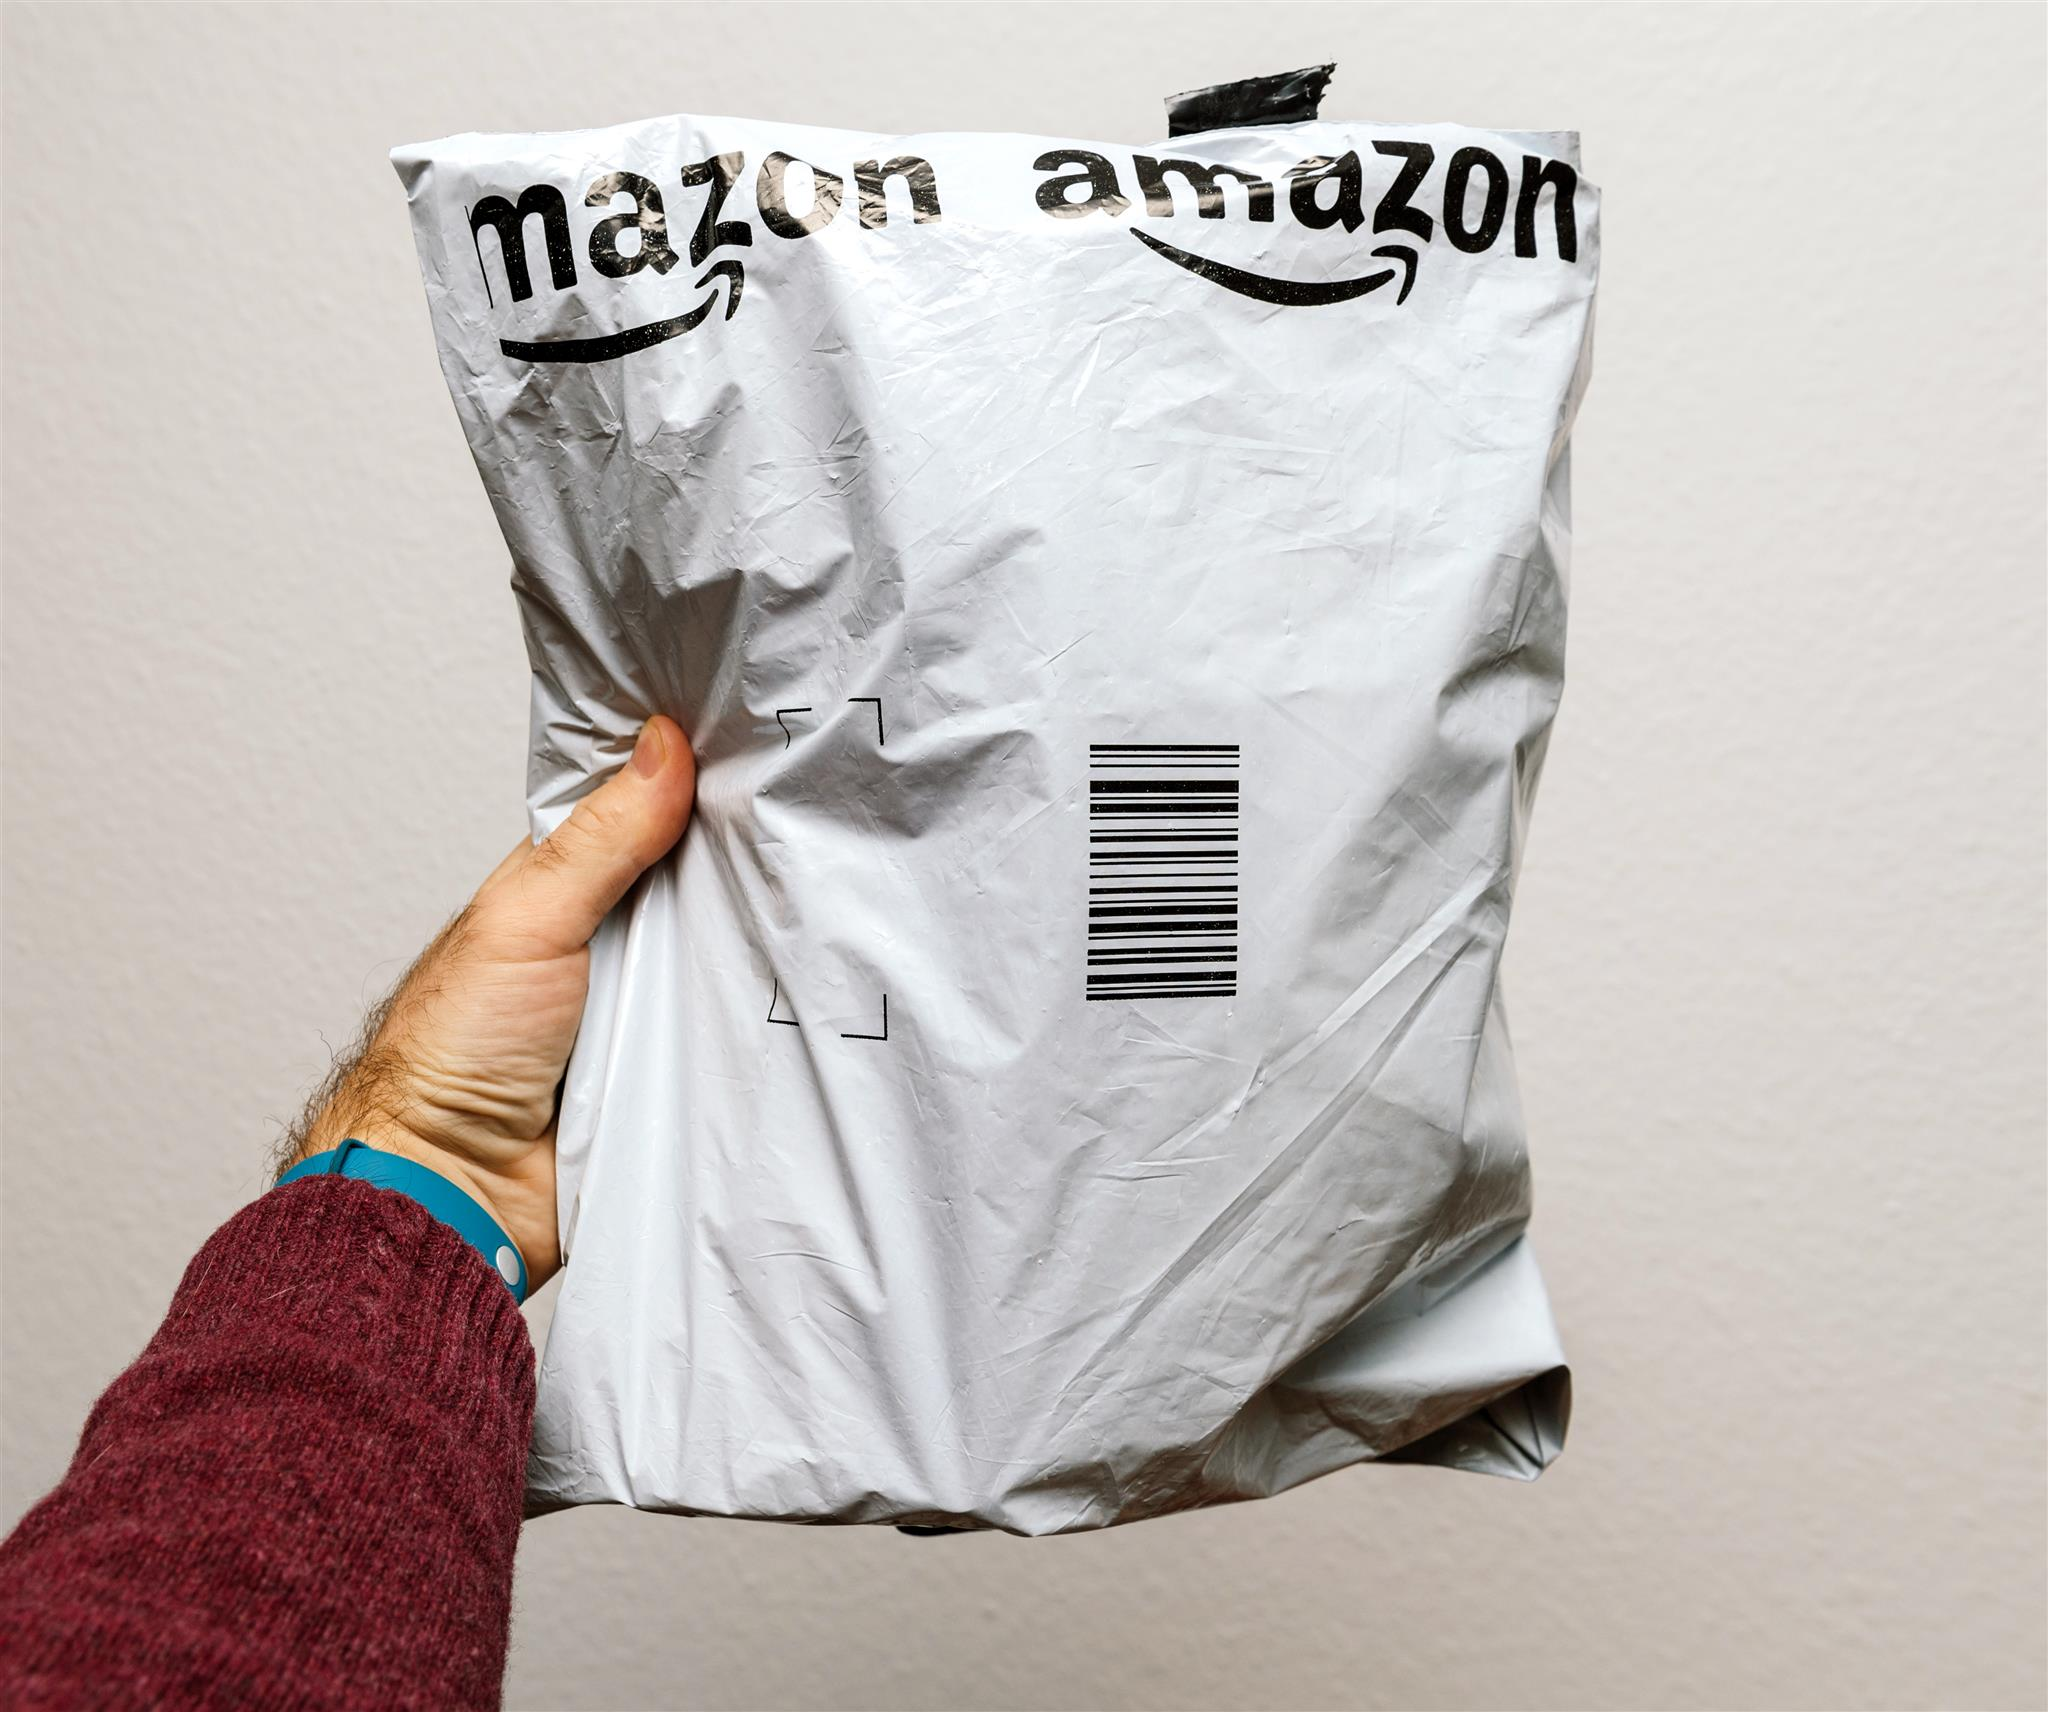 amazon add-on, amazon add on, amazon add on items, amazon add on program, amazon add on badge, amazon add on search, what does add on item mean on amazon, amazon add on item, amazon prime add on, amazon prime add on items, what does amazon add on item mean, what is an add on item for amazon, what is an add on item on amazon, amazon add on benefits, amazon add on advantages, helium 10, helium 10 tools, manny coats